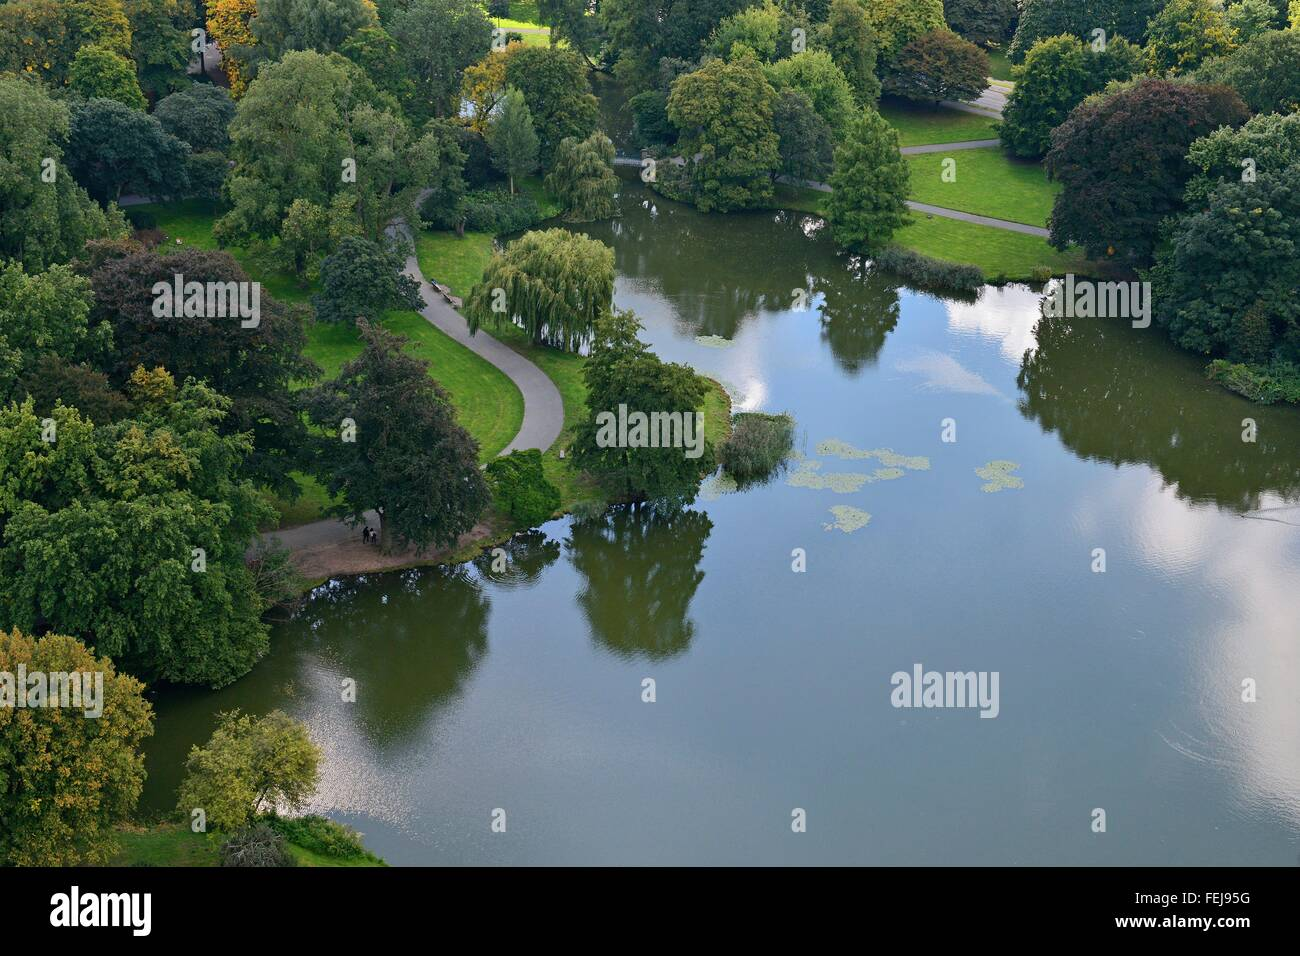 Bendy footpaths at the border of Hanover's pond Maschteich surrounded by a green park, 25 September 2015 Stock Photo